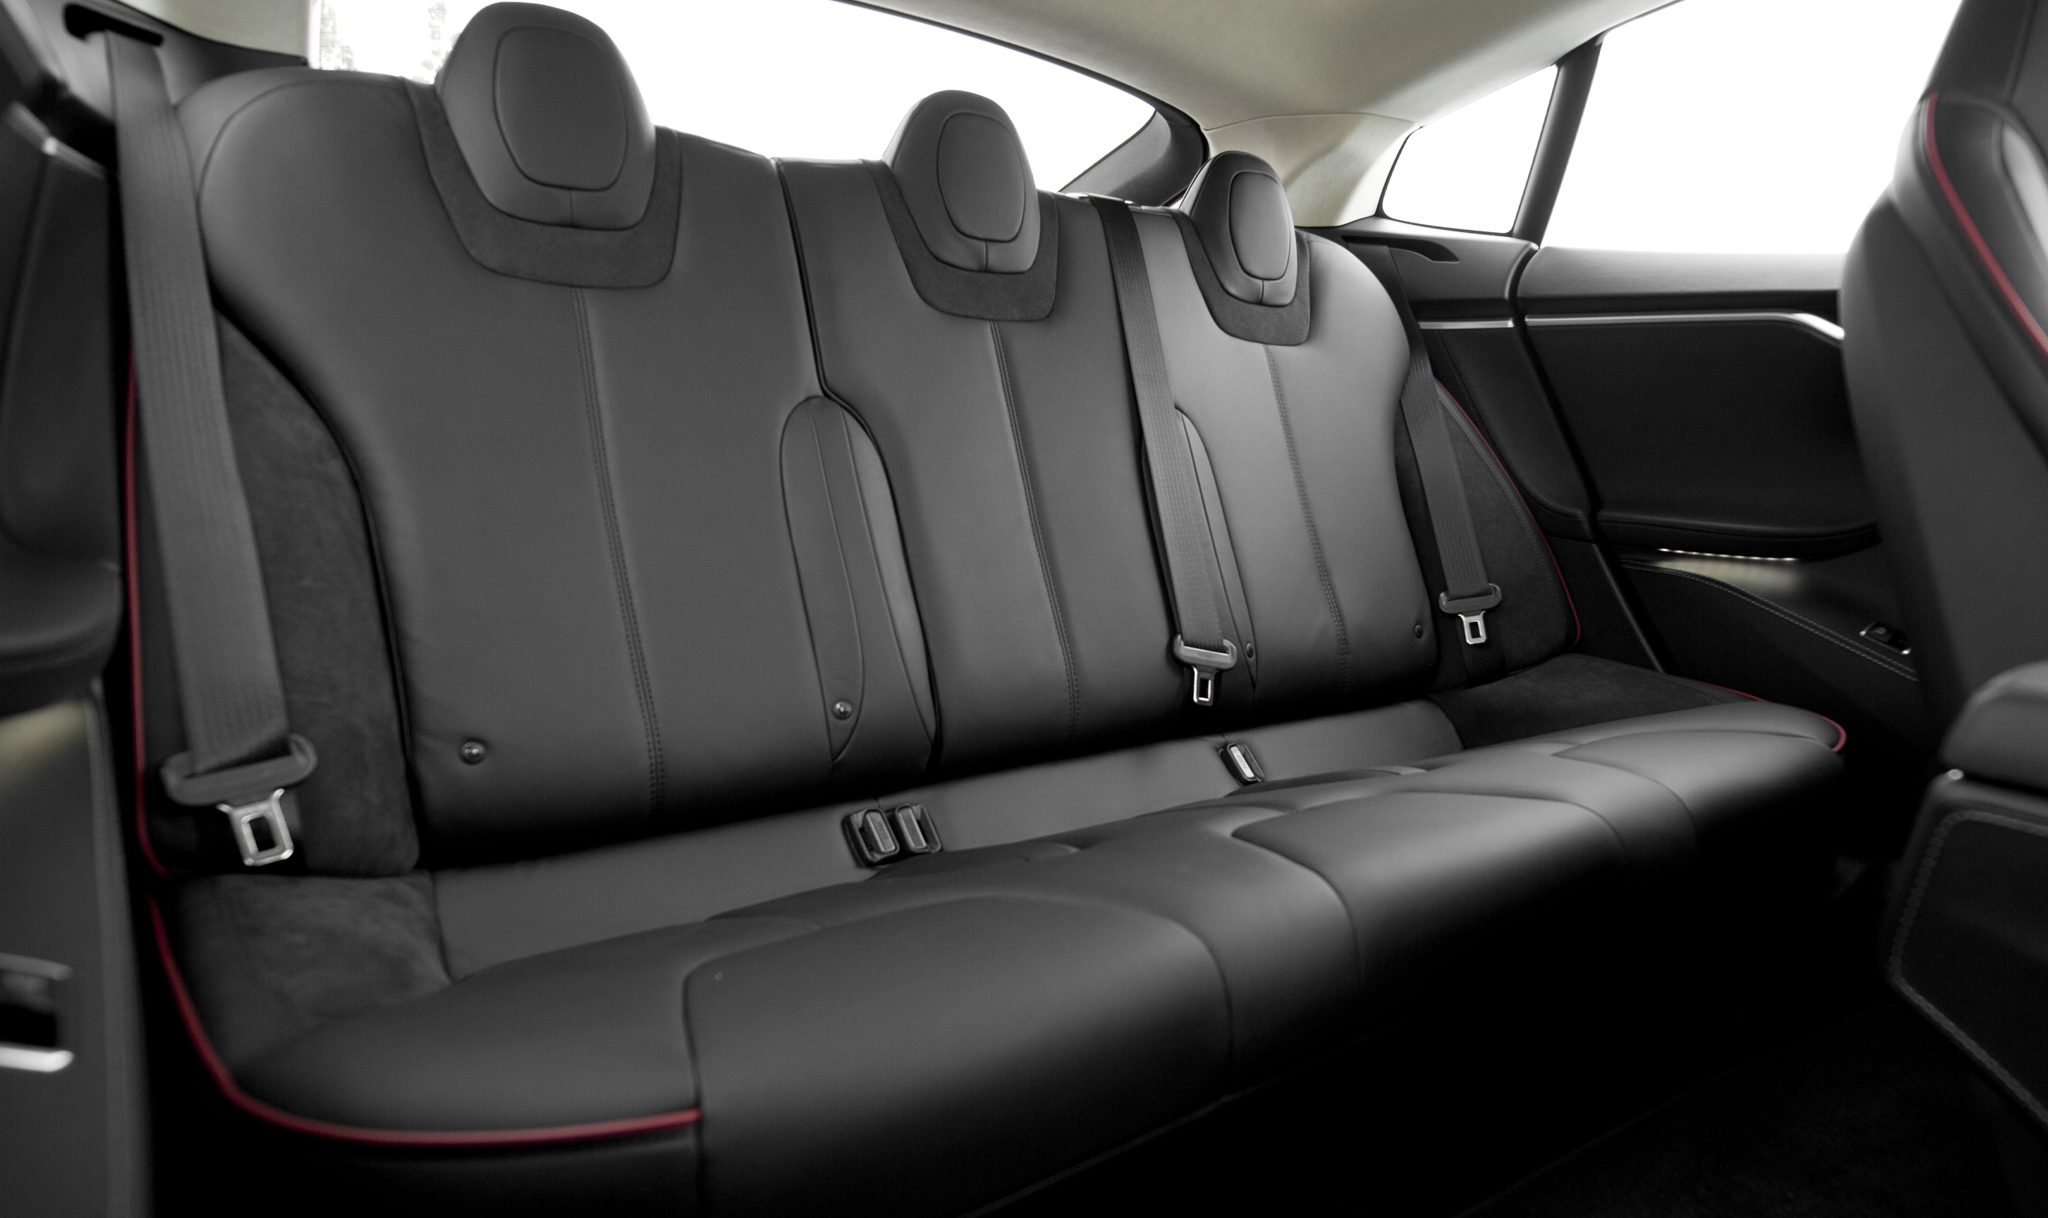 Tesla Updates Model S Interior With New Back Seats